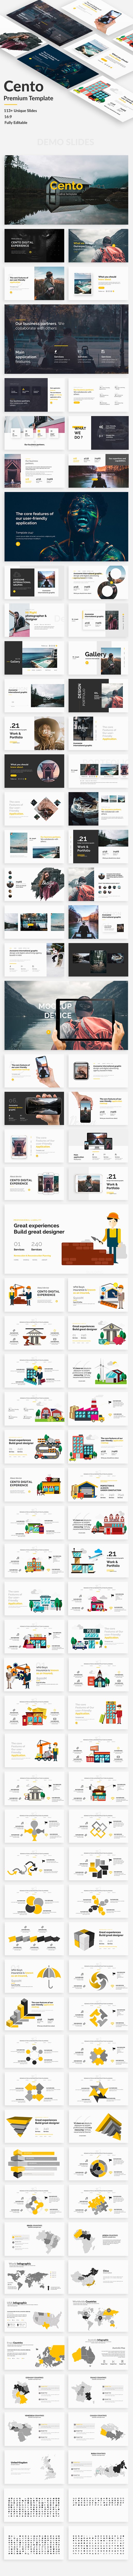 Cento Design Premium Powerpoint Template - Creative PowerPoint Templates